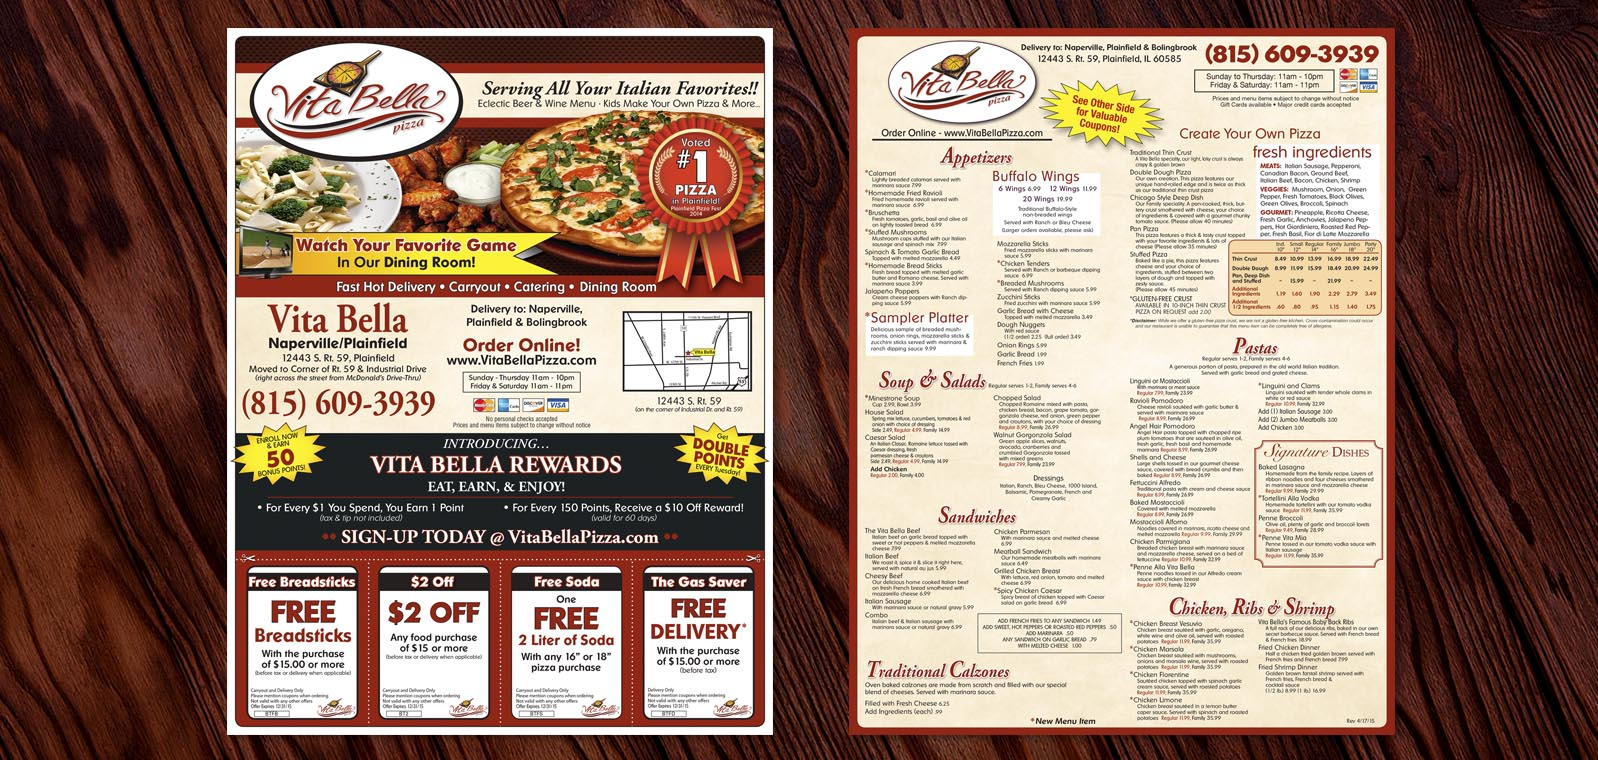 Pizza Box Topper Graphic Design by Roselle Graphic Designer Controlled Color, Inc.